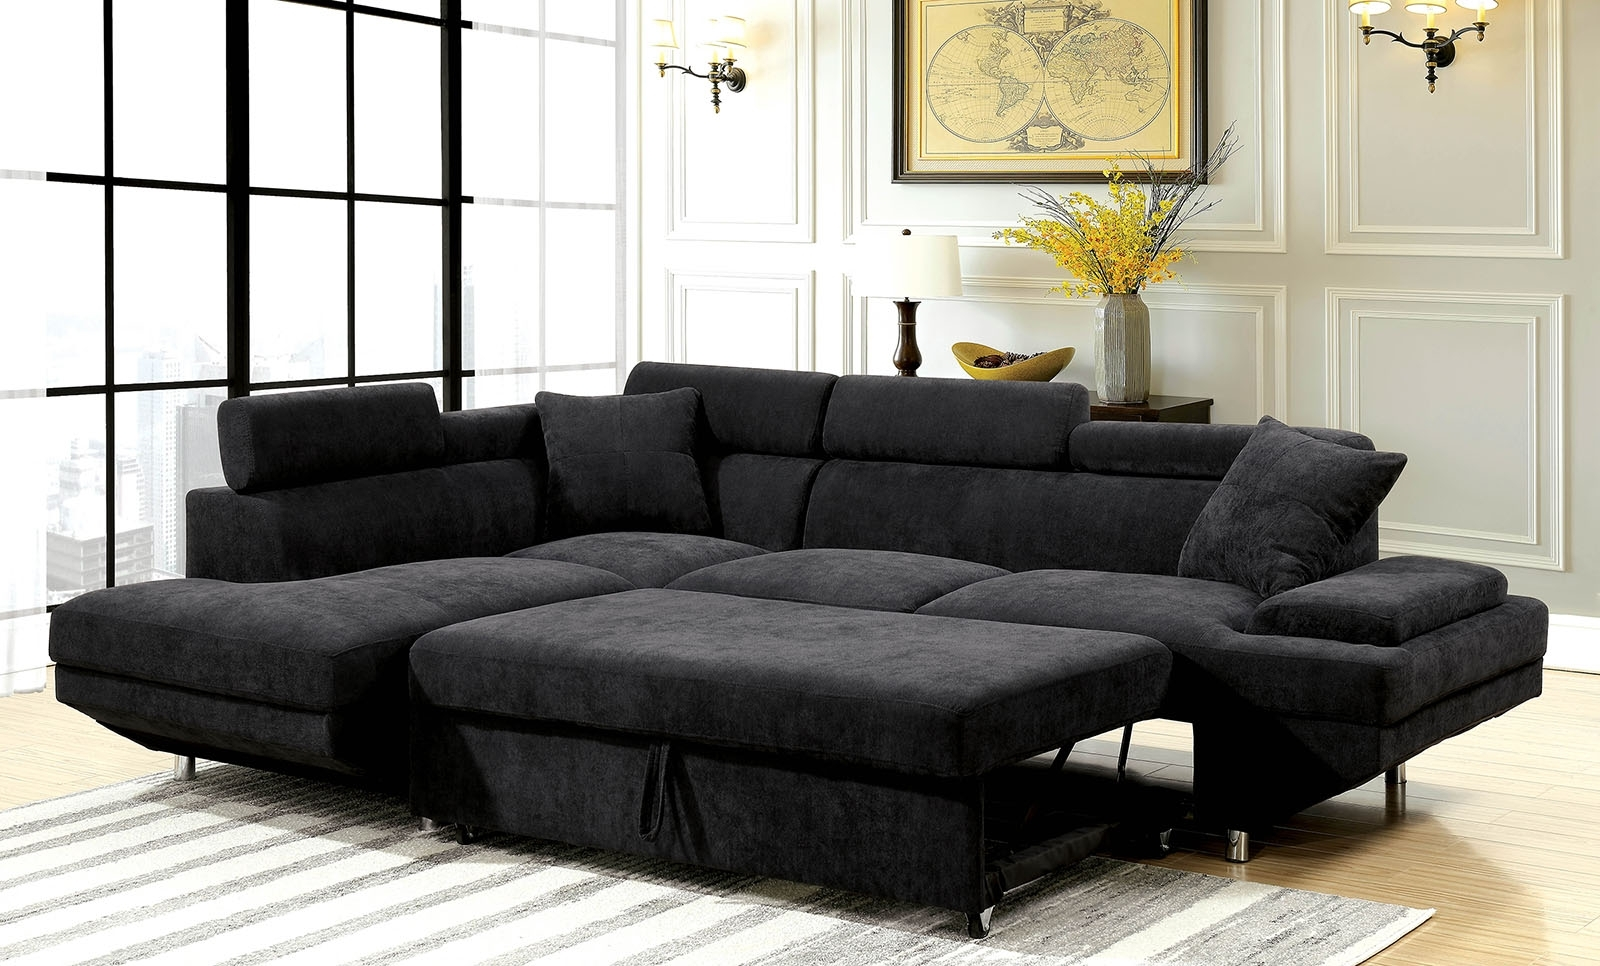 Well Known Adjustable Sectional Sofas With Queen Bed In Foreman Black Flannelette Fabric Sectional With Pull Out Bed (View 14 of 15)